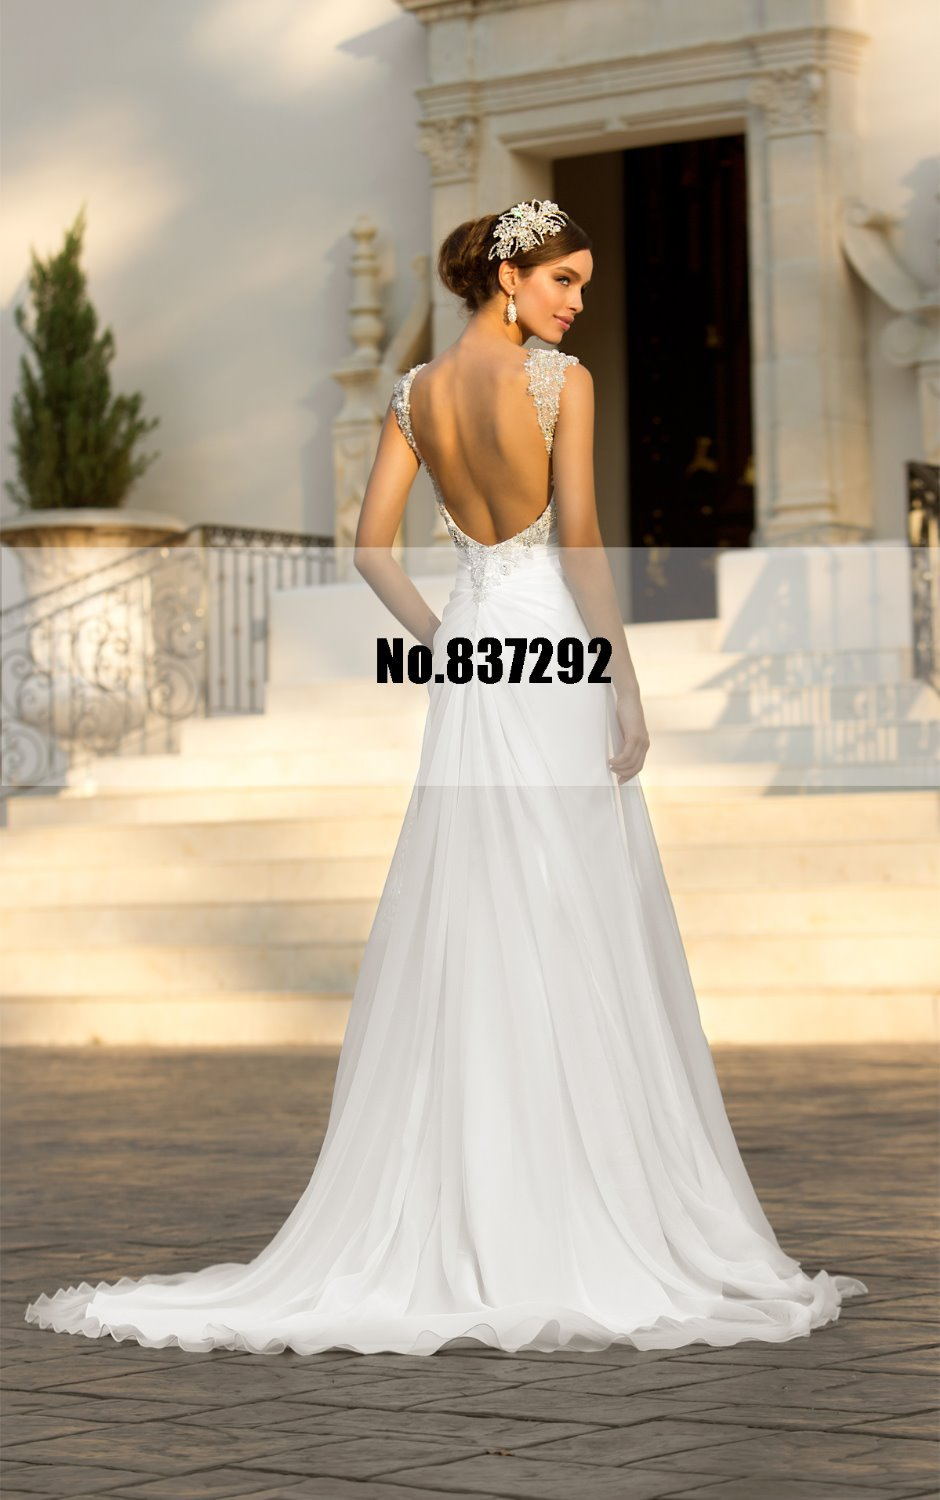 plus size wedding dress under $100